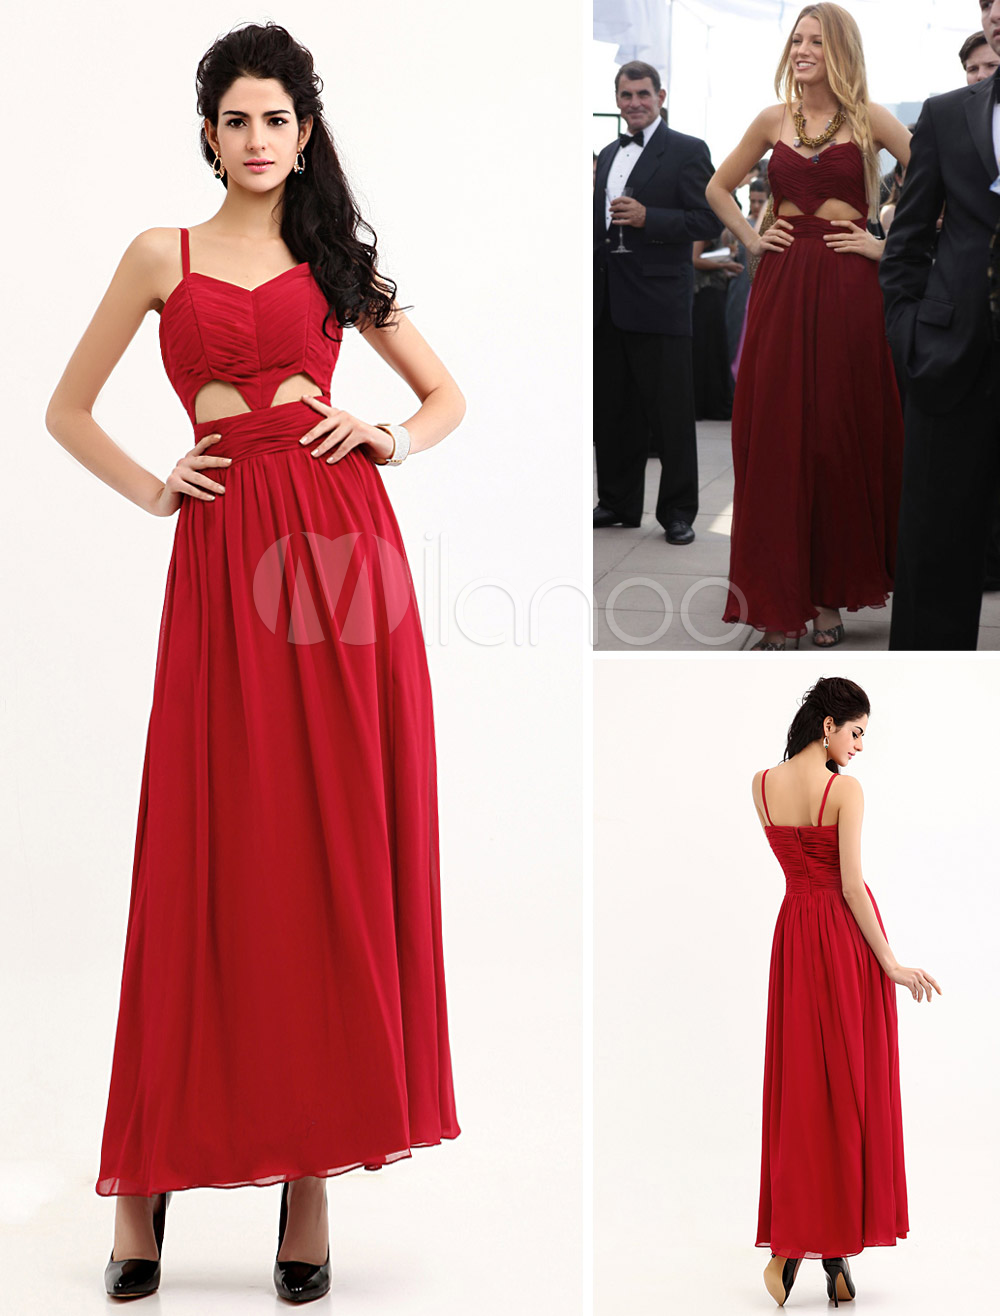 Buy Chic Ankle-length Cut Out Chiffon Formal Evening Gossip Girl Dress for $116.99 in Milanoo store